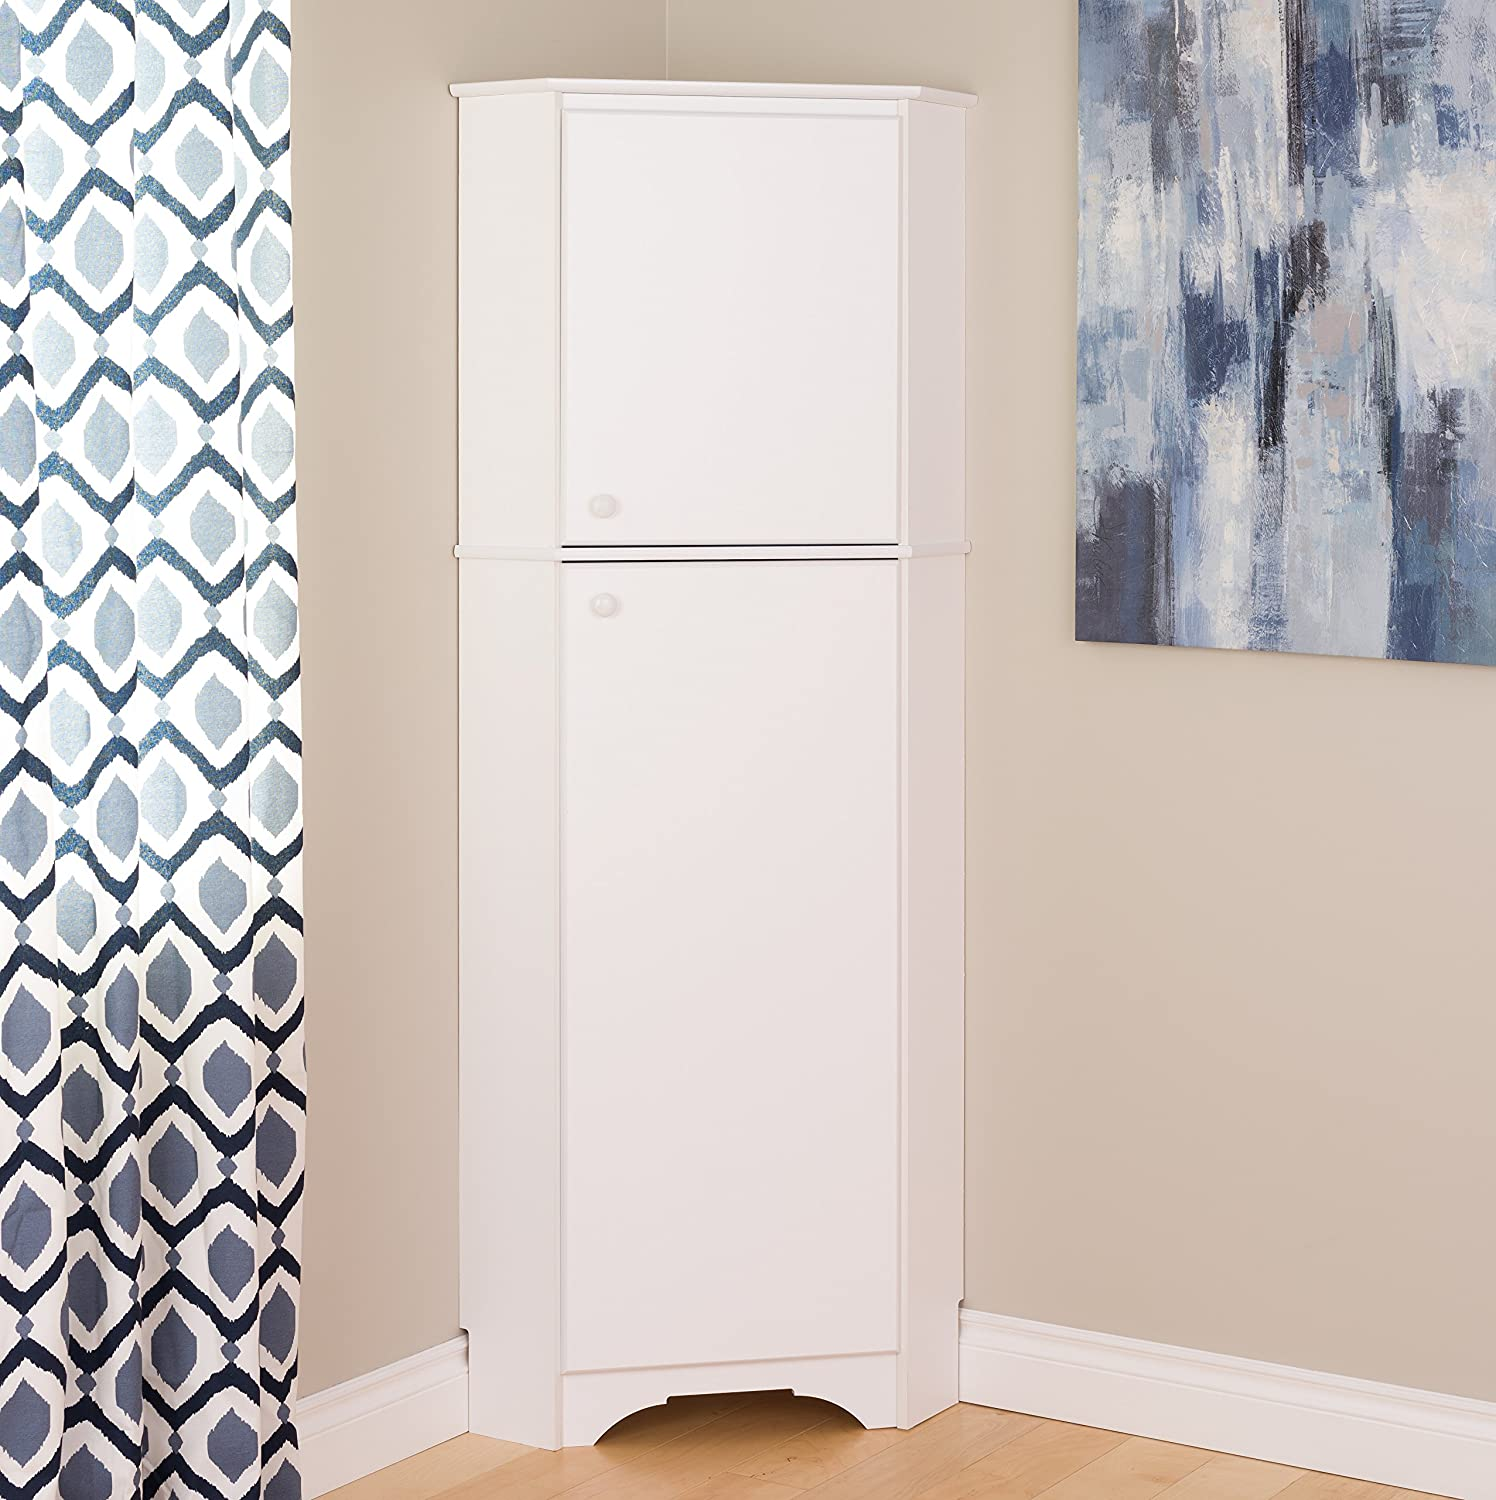 wood interior doors and productinformation made finish value custom added tall high with en aluminium anyway modern end